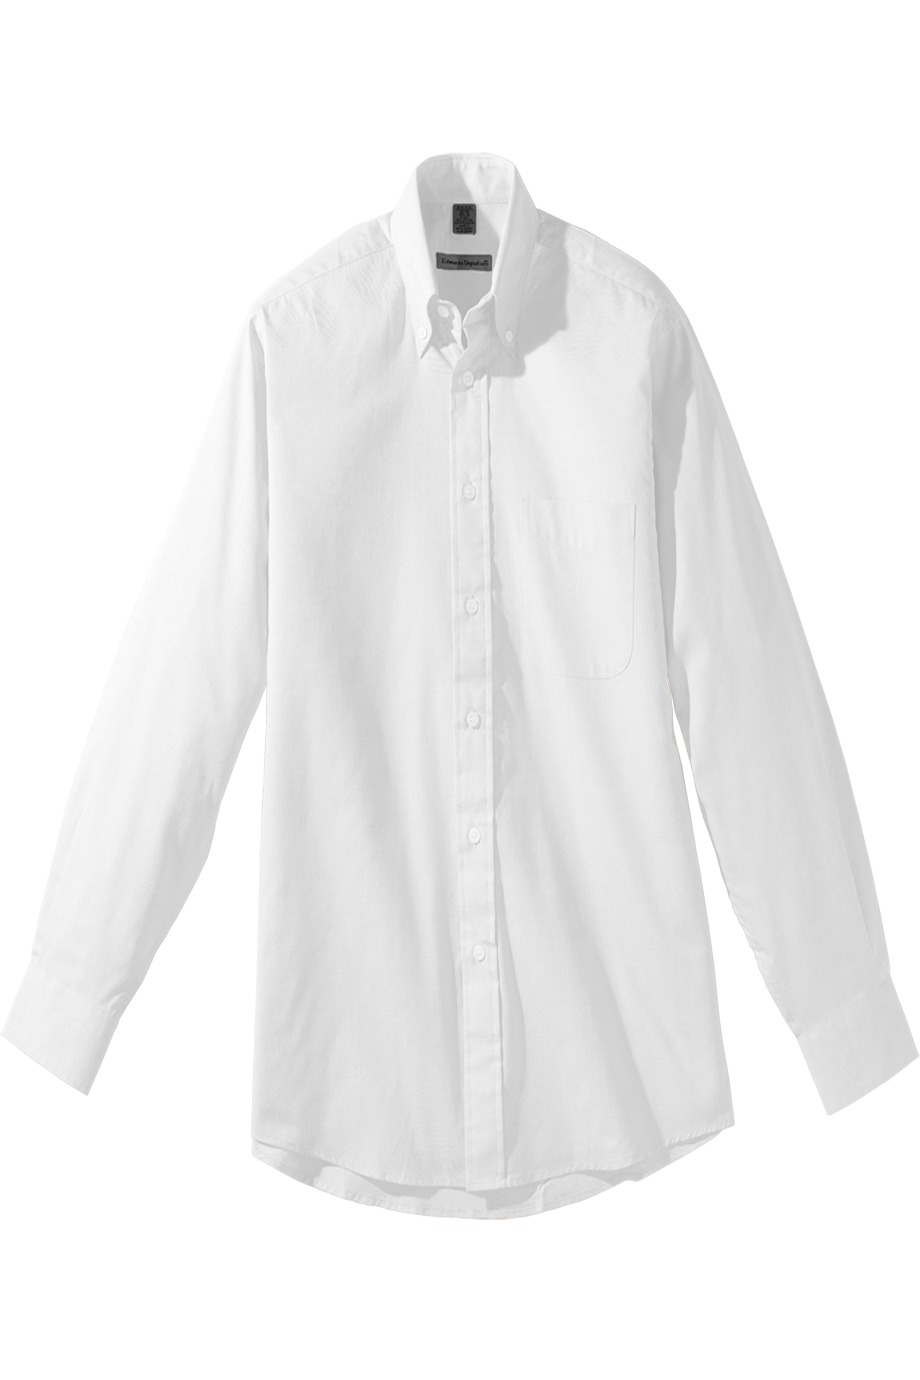 Wholesale Oxford Long Sleeve Shirt Women White From 14 65